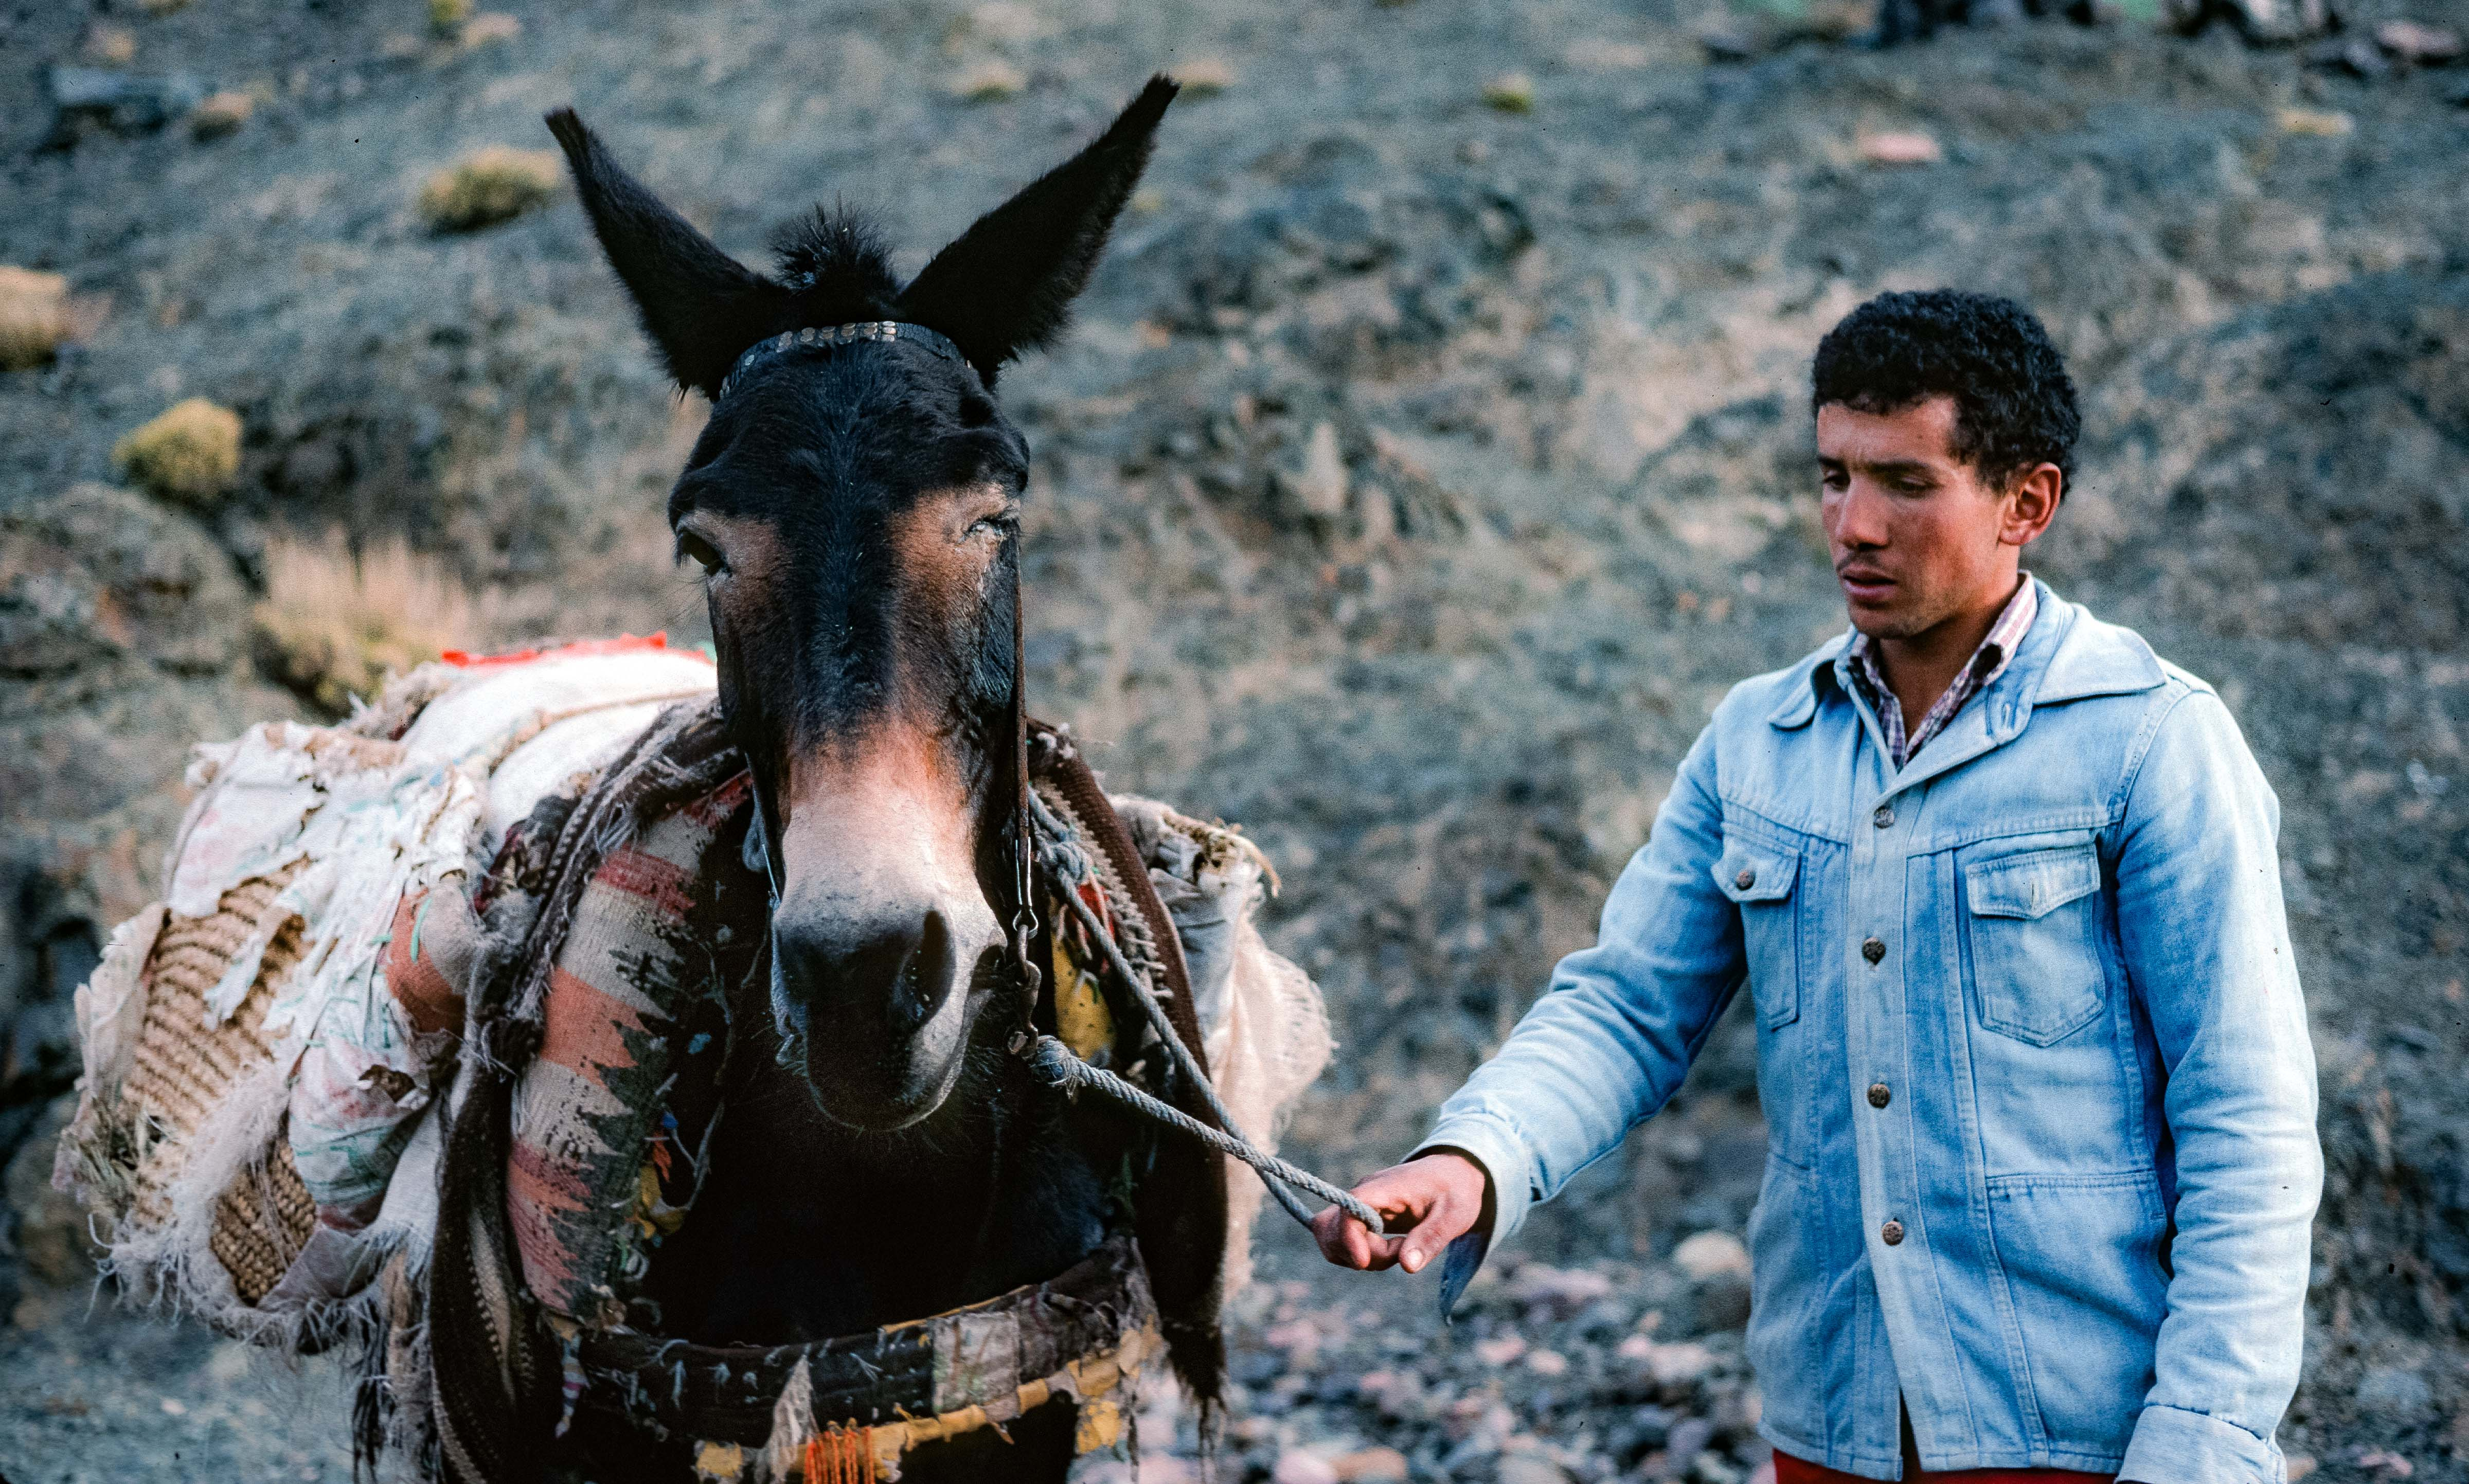 Morocco, Burro And Berber Man, 1988